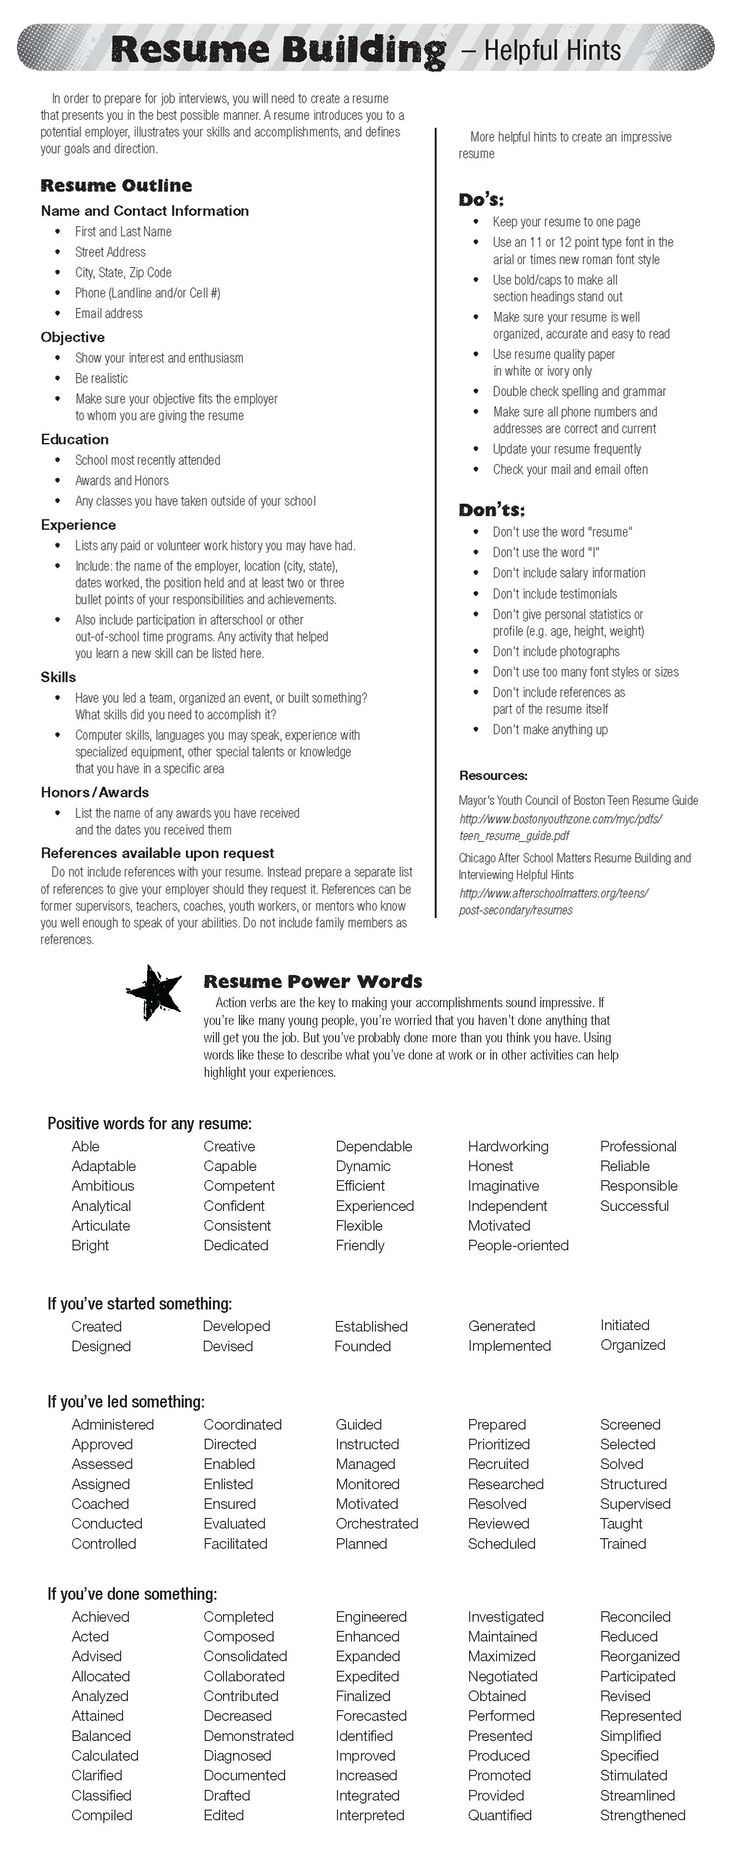 Opposenewapstandardsus  Terrific  Ideas About Resume On Pinterest  Cv Format Resume Cv And  With Likable  Ideas About Resume On Pinterest  Cv Format Resume Cv And Resume Templates With Delightful Hr Generalist Resume Also Resumes For Teens In Addition Plain Text Resume And Resume Paper Walmart As Well As Resume Template Examples Additionally Sample Professional Resume From Pinterestcom With Opposenewapstandardsus  Likable  Ideas About Resume On Pinterest  Cv Format Resume Cv And  With Delightful  Ideas About Resume On Pinterest  Cv Format Resume Cv And Resume Templates And Terrific Hr Generalist Resume Also Resumes For Teens In Addition Plain Text Resume From Pinterestcom